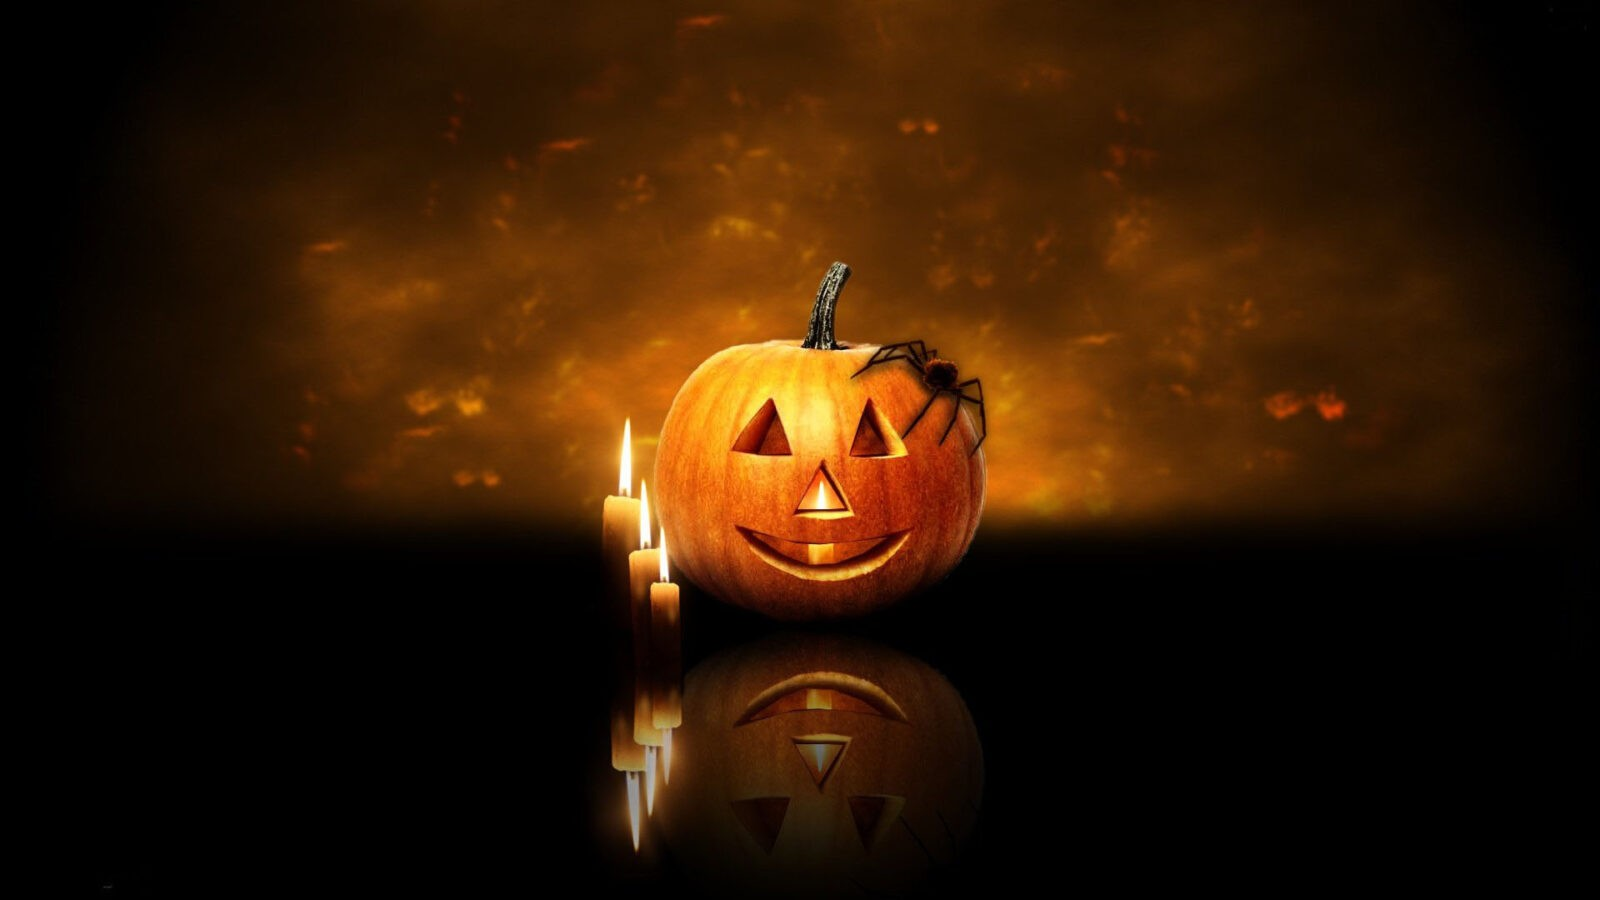 Helloween Hd Wallpapers Free Download